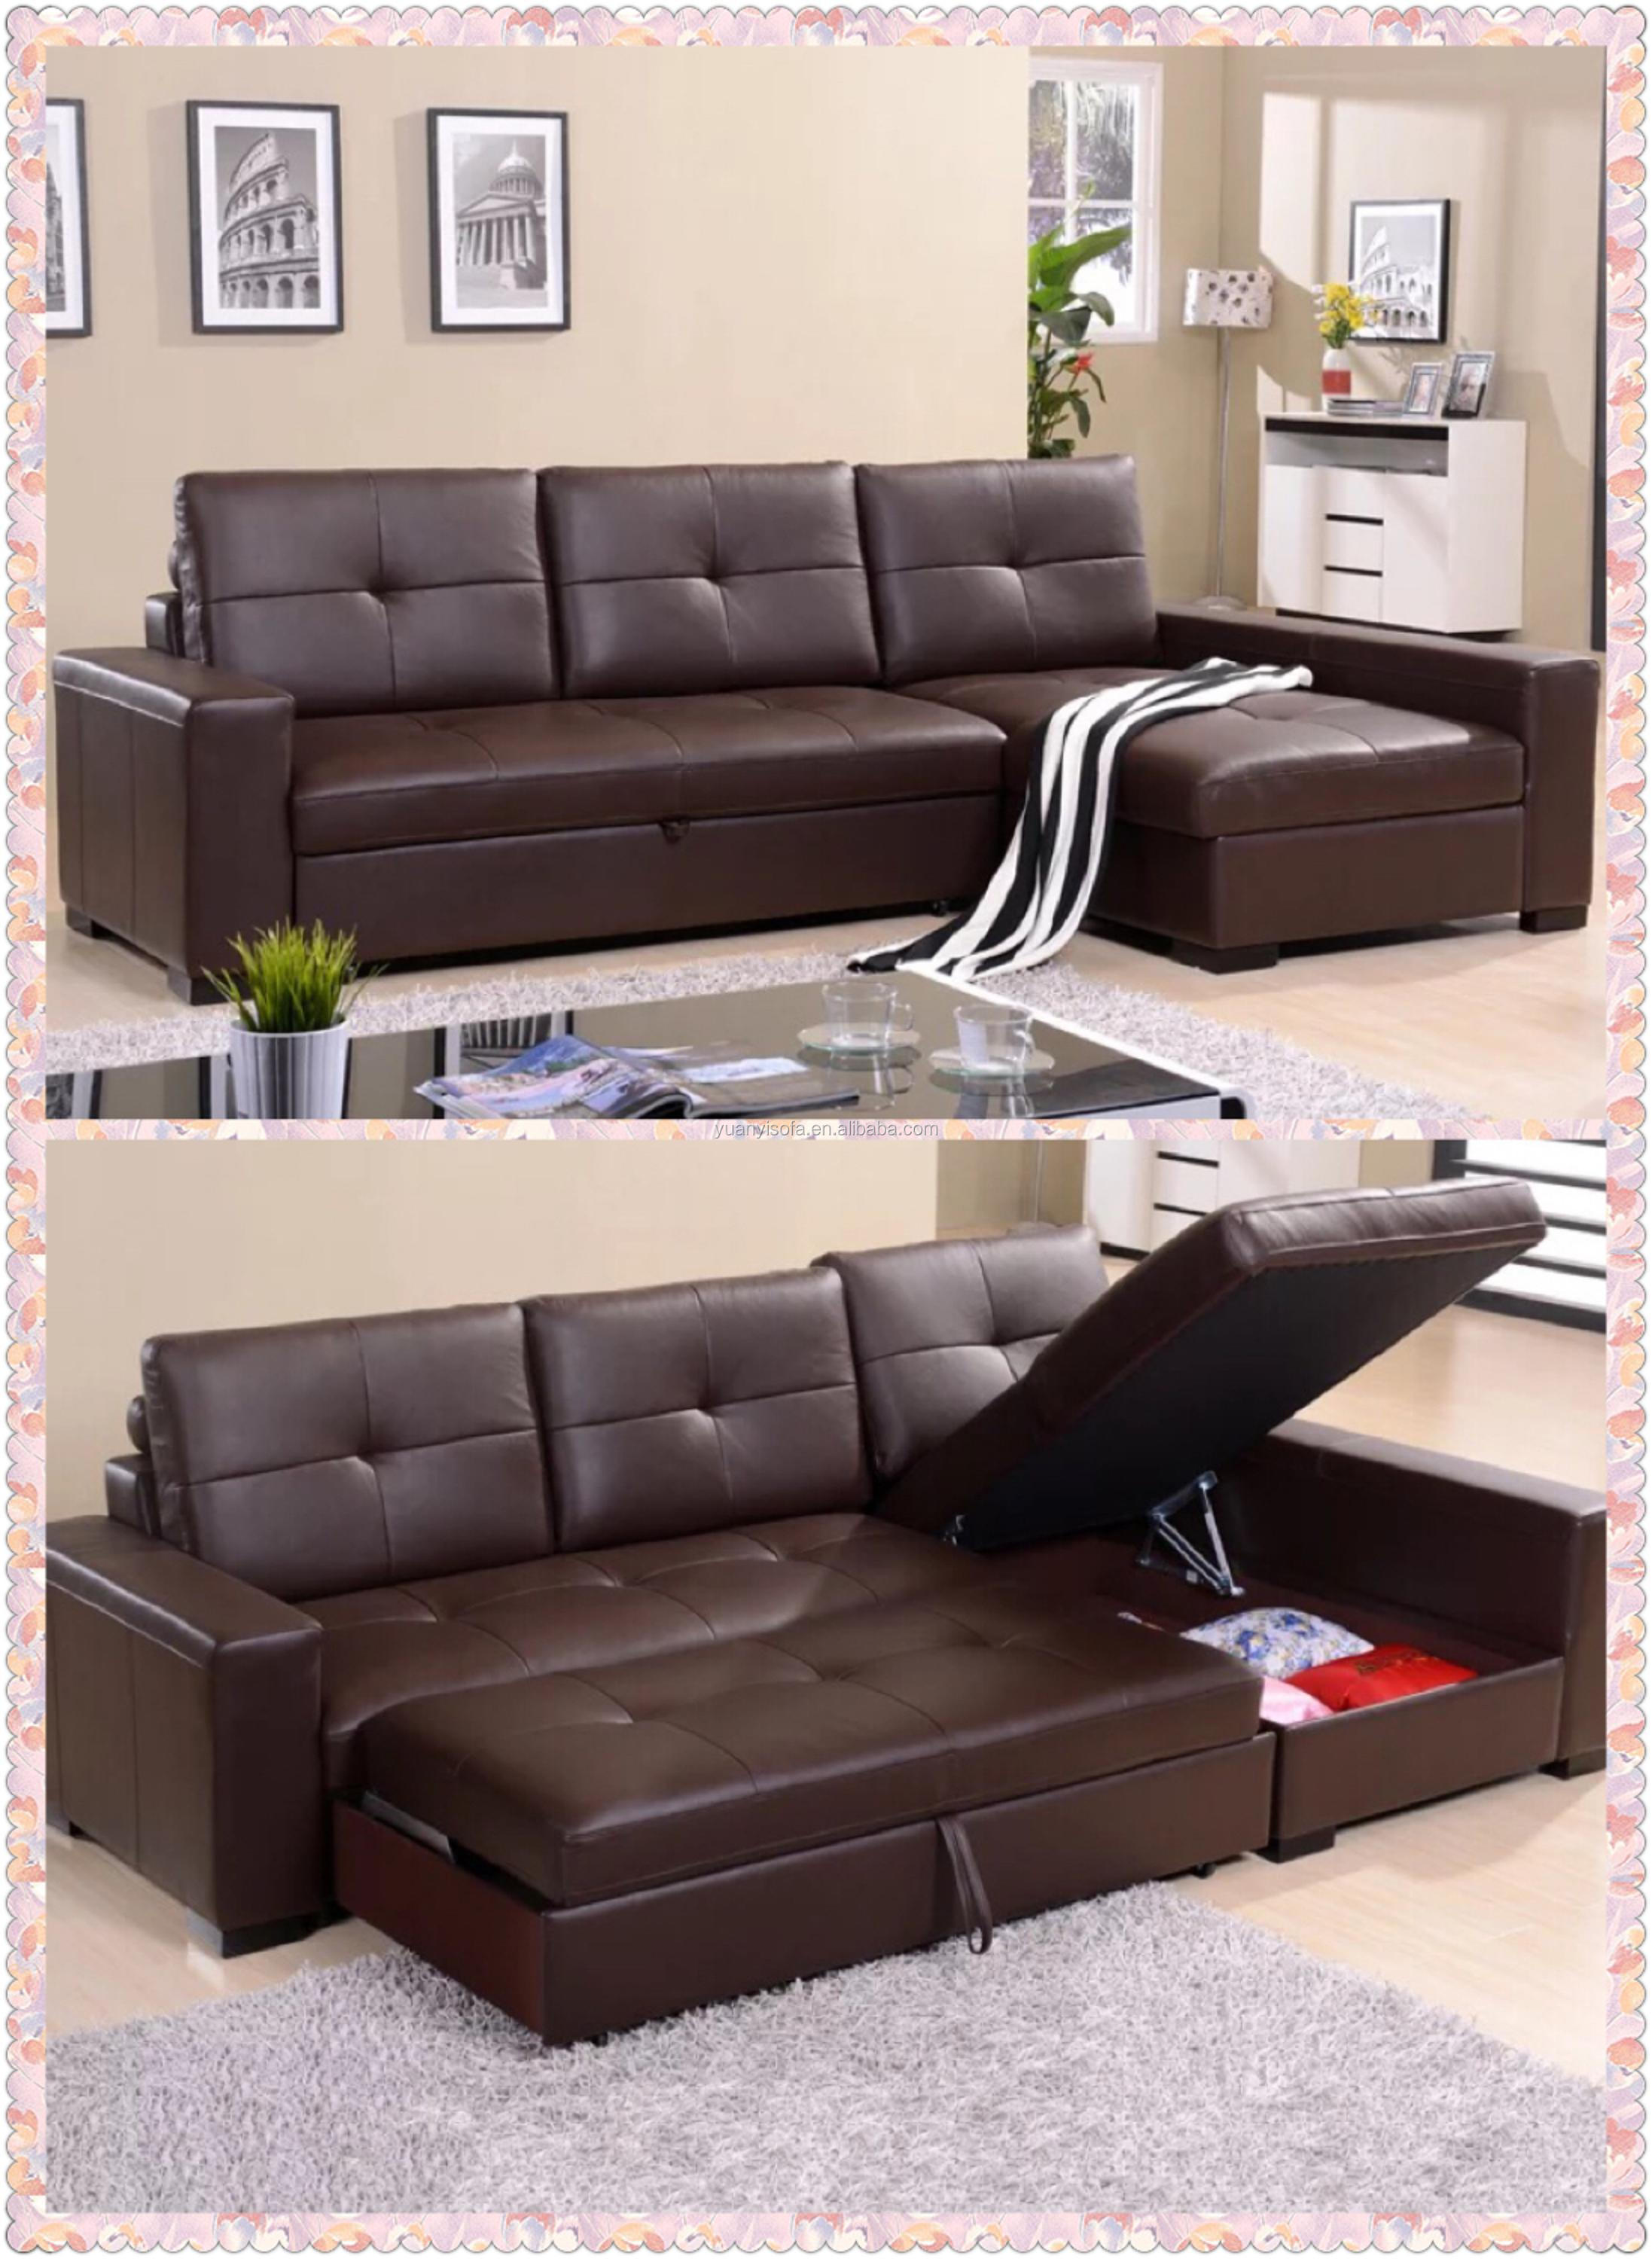 Multifunctional Corner Leather Sofa Bed